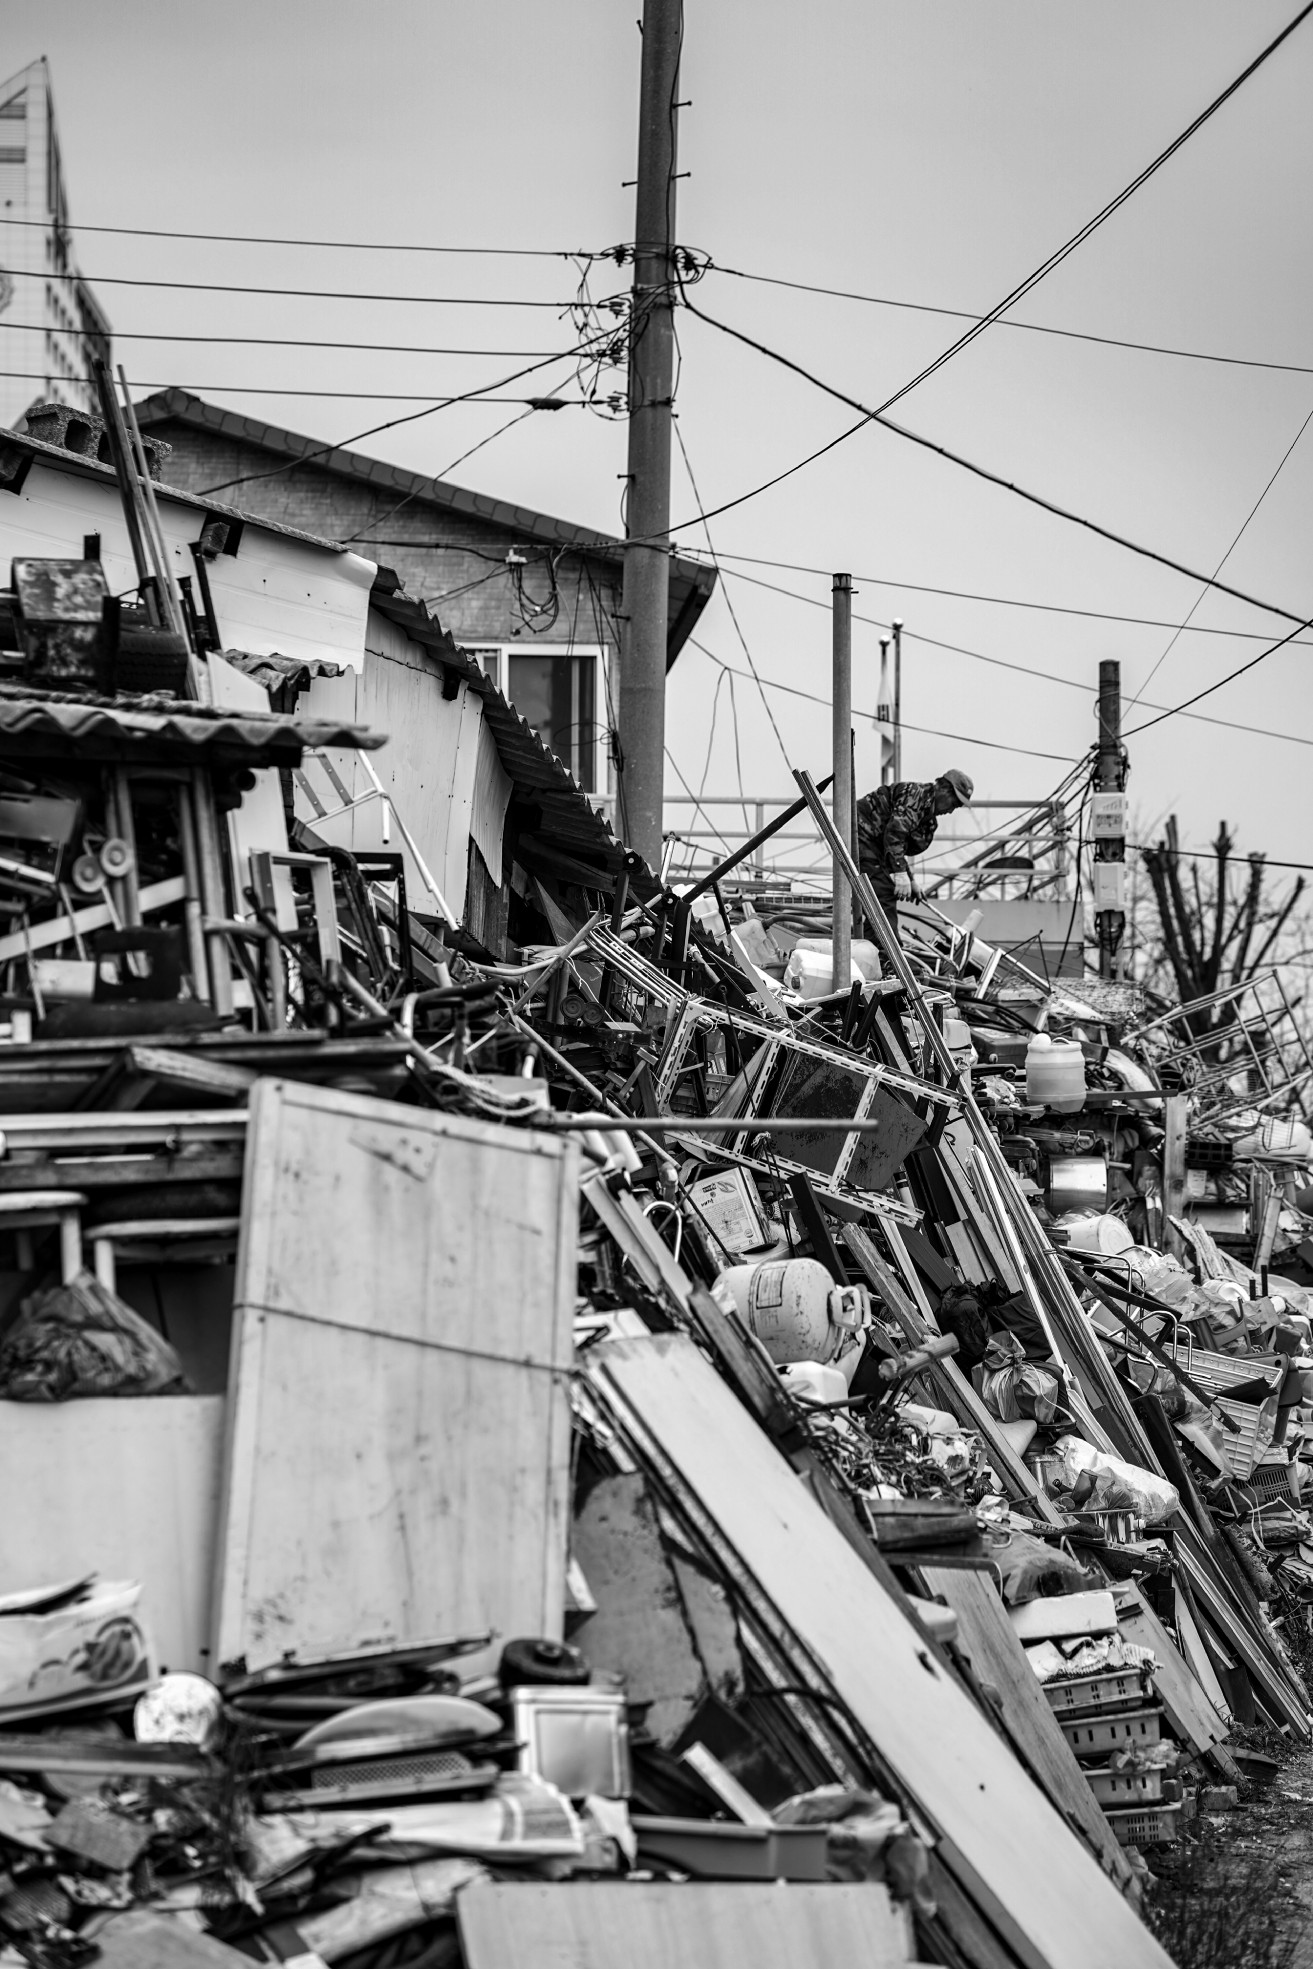 Analyzing earthquakes in USA to determine the possibly risky to